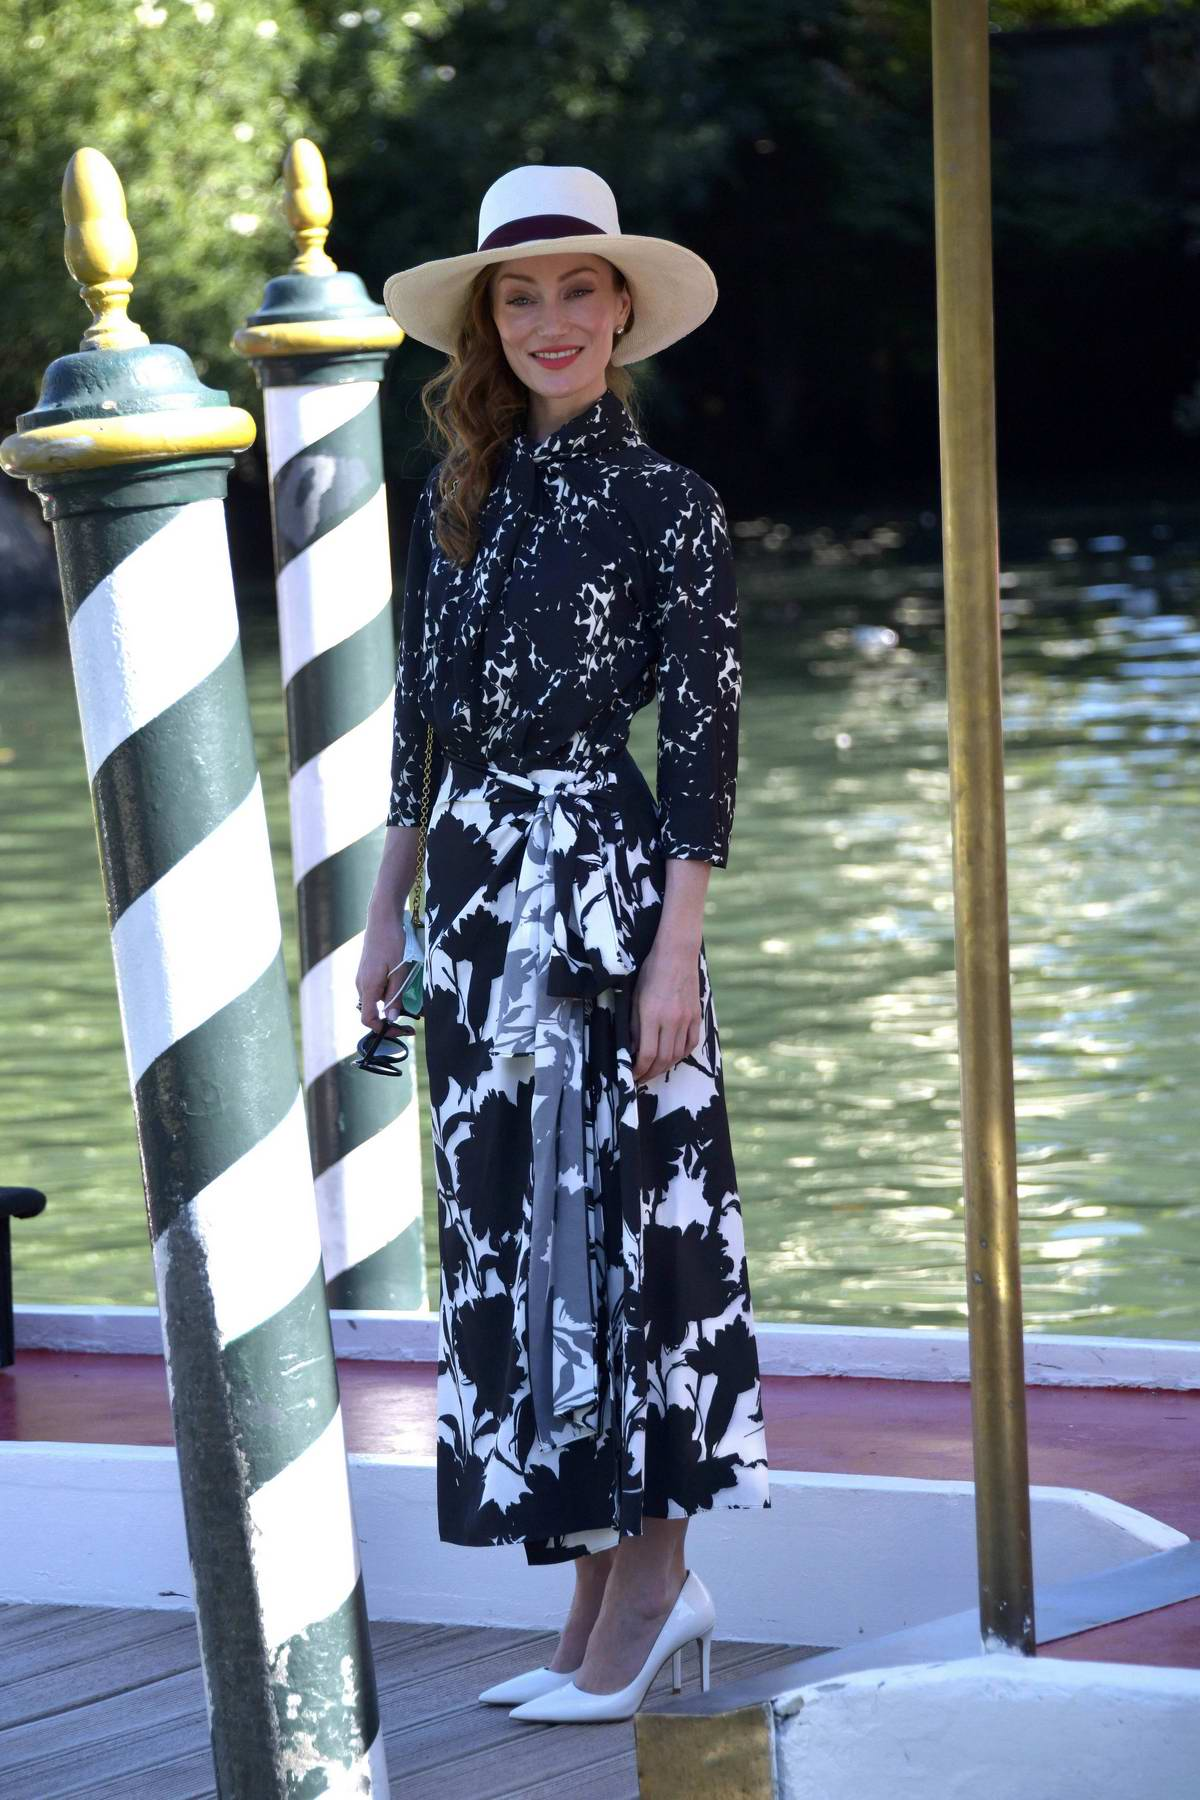 Lotte Verbeek poses for photos at the 77th Venice Film Festival in Venice, Italy